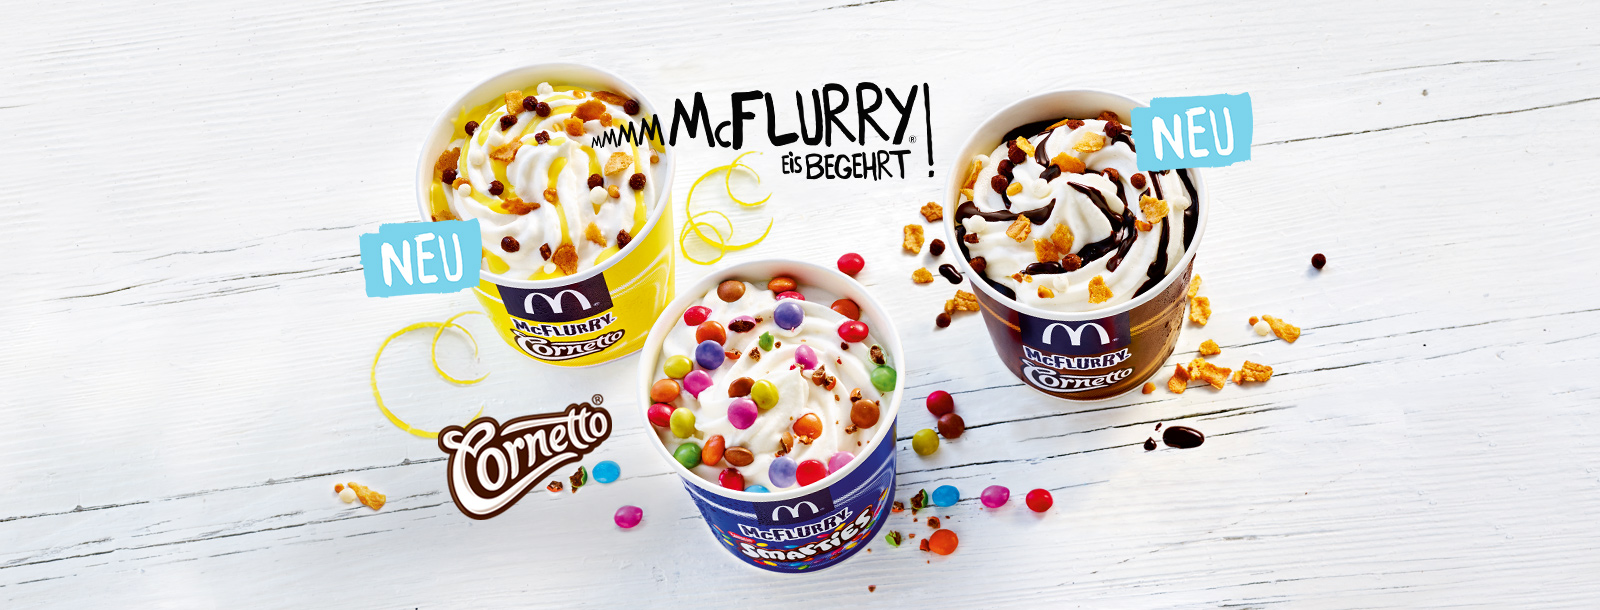 McFlurry Cornetto